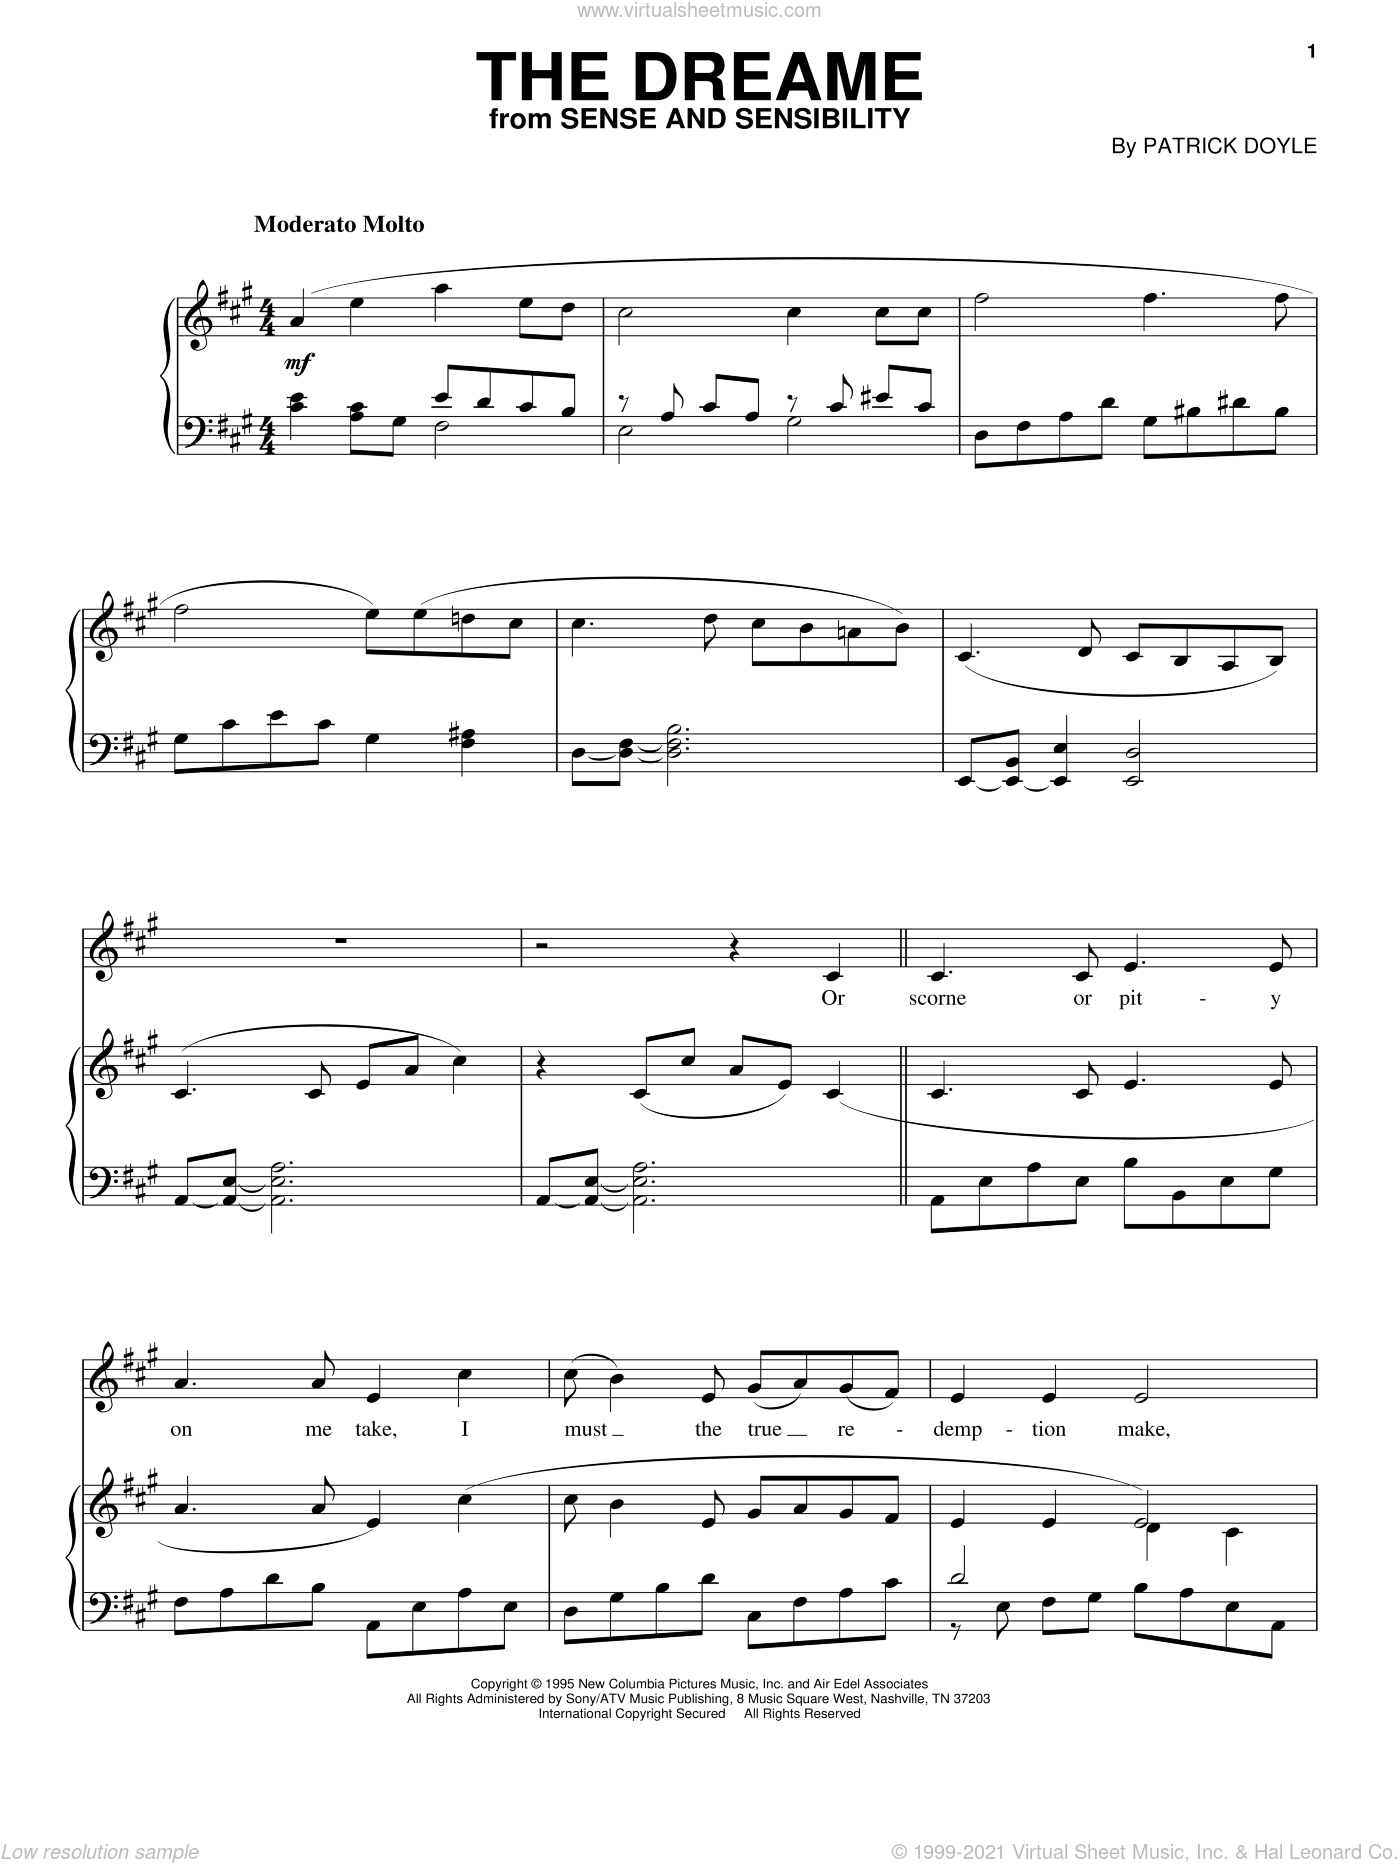 The Dreame sheet music for voice, piano or guitar by Patrick Doyle